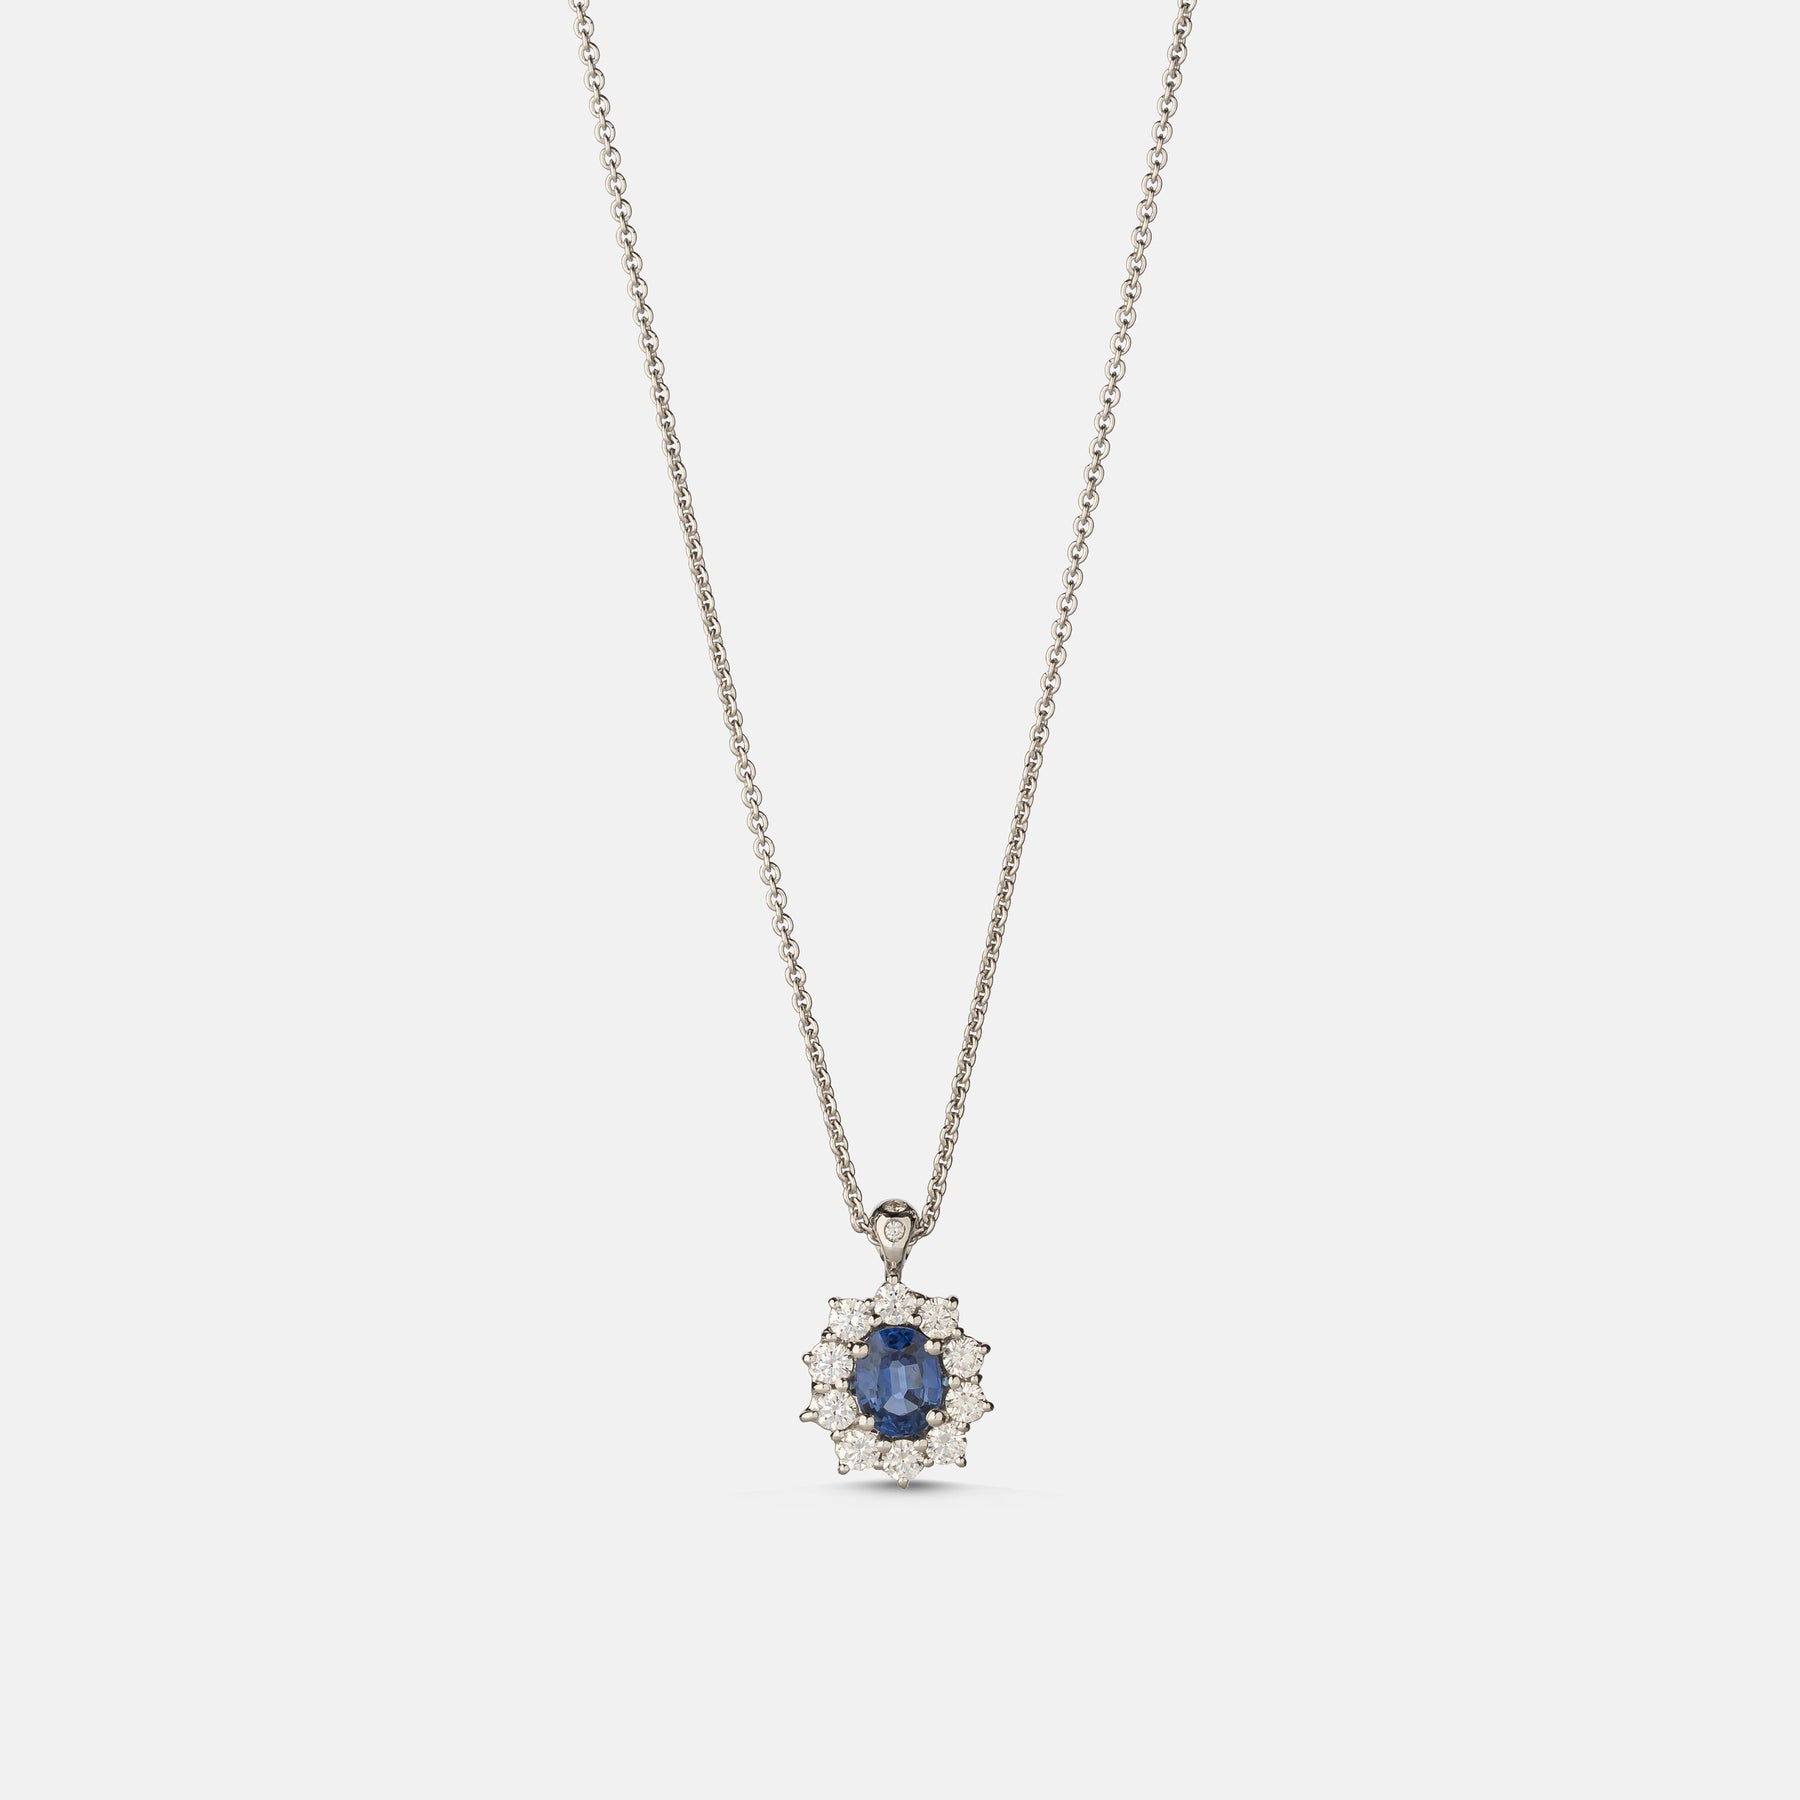 0.88ct Oval Sapphire Pendant,<br> 18ct White Gold Chain